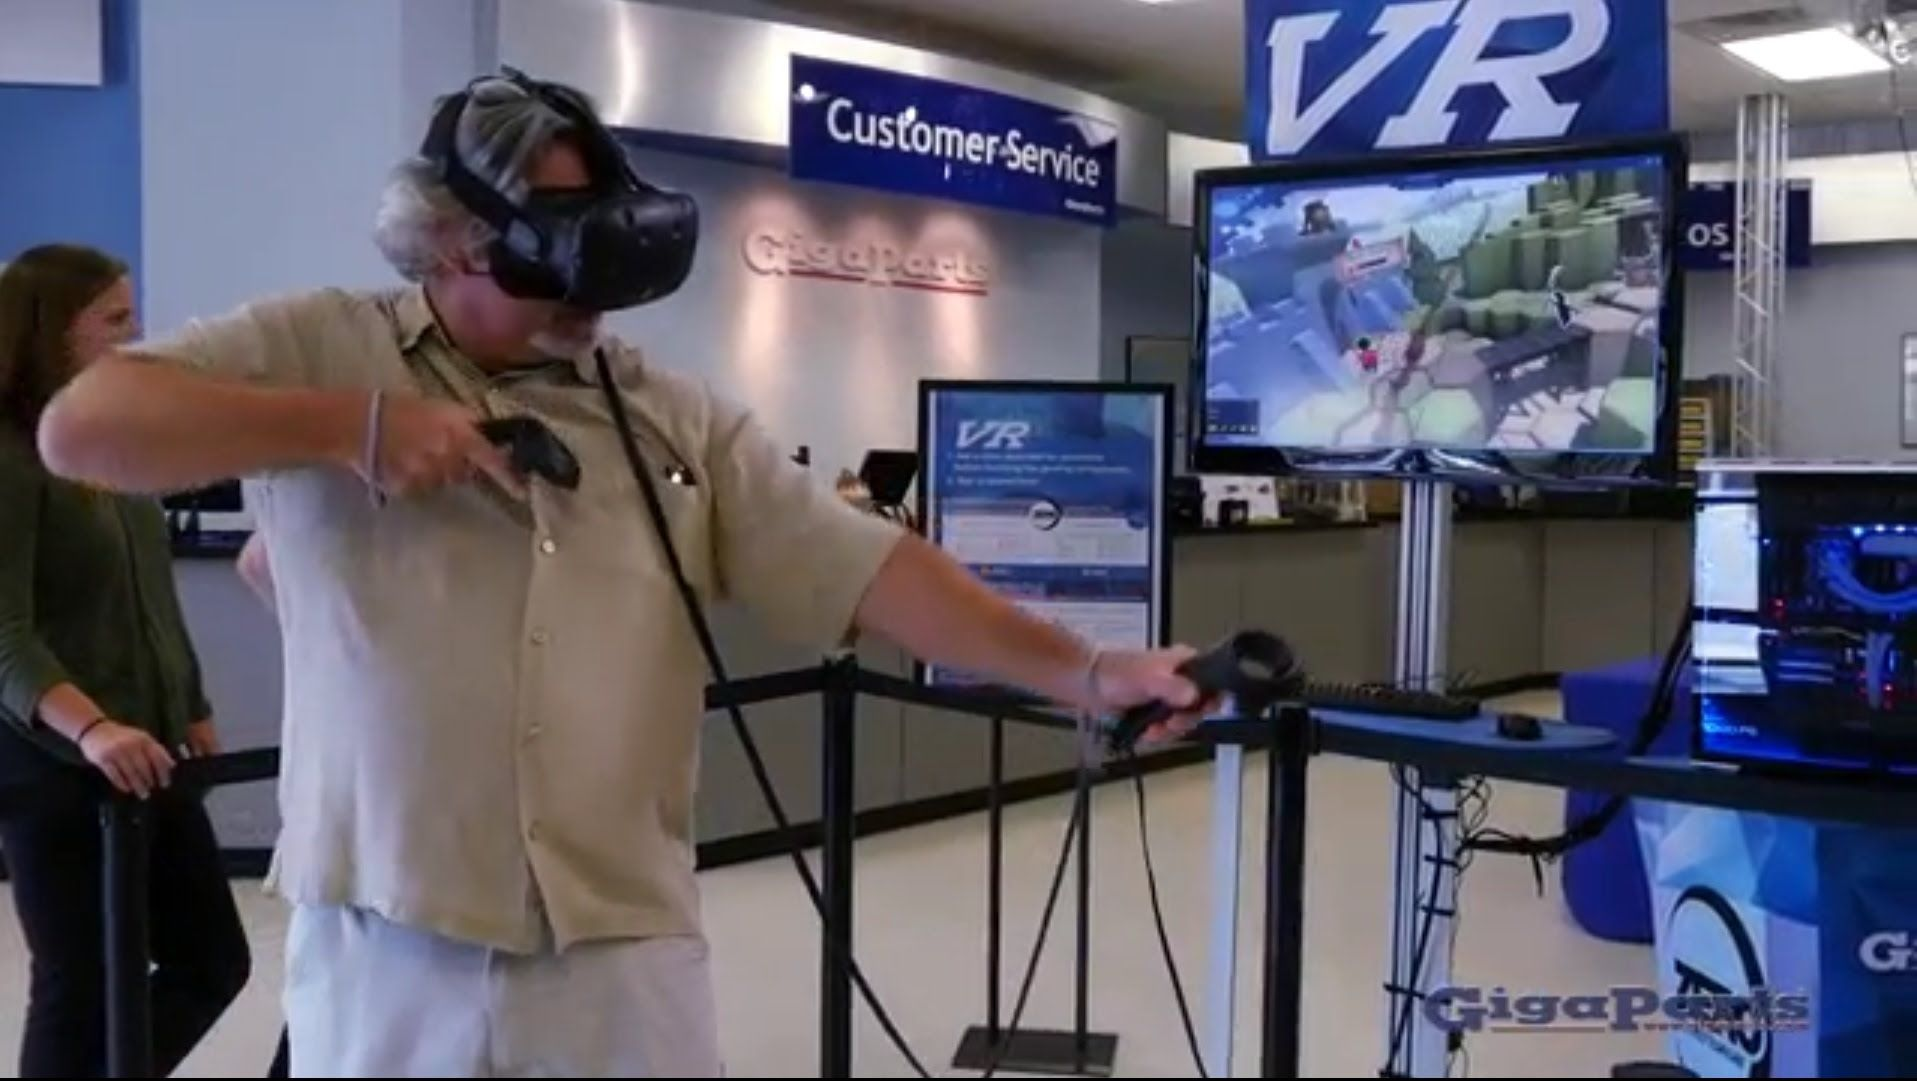 Virtual Reality Demo at GigaParts | GigaParts in Huntsville